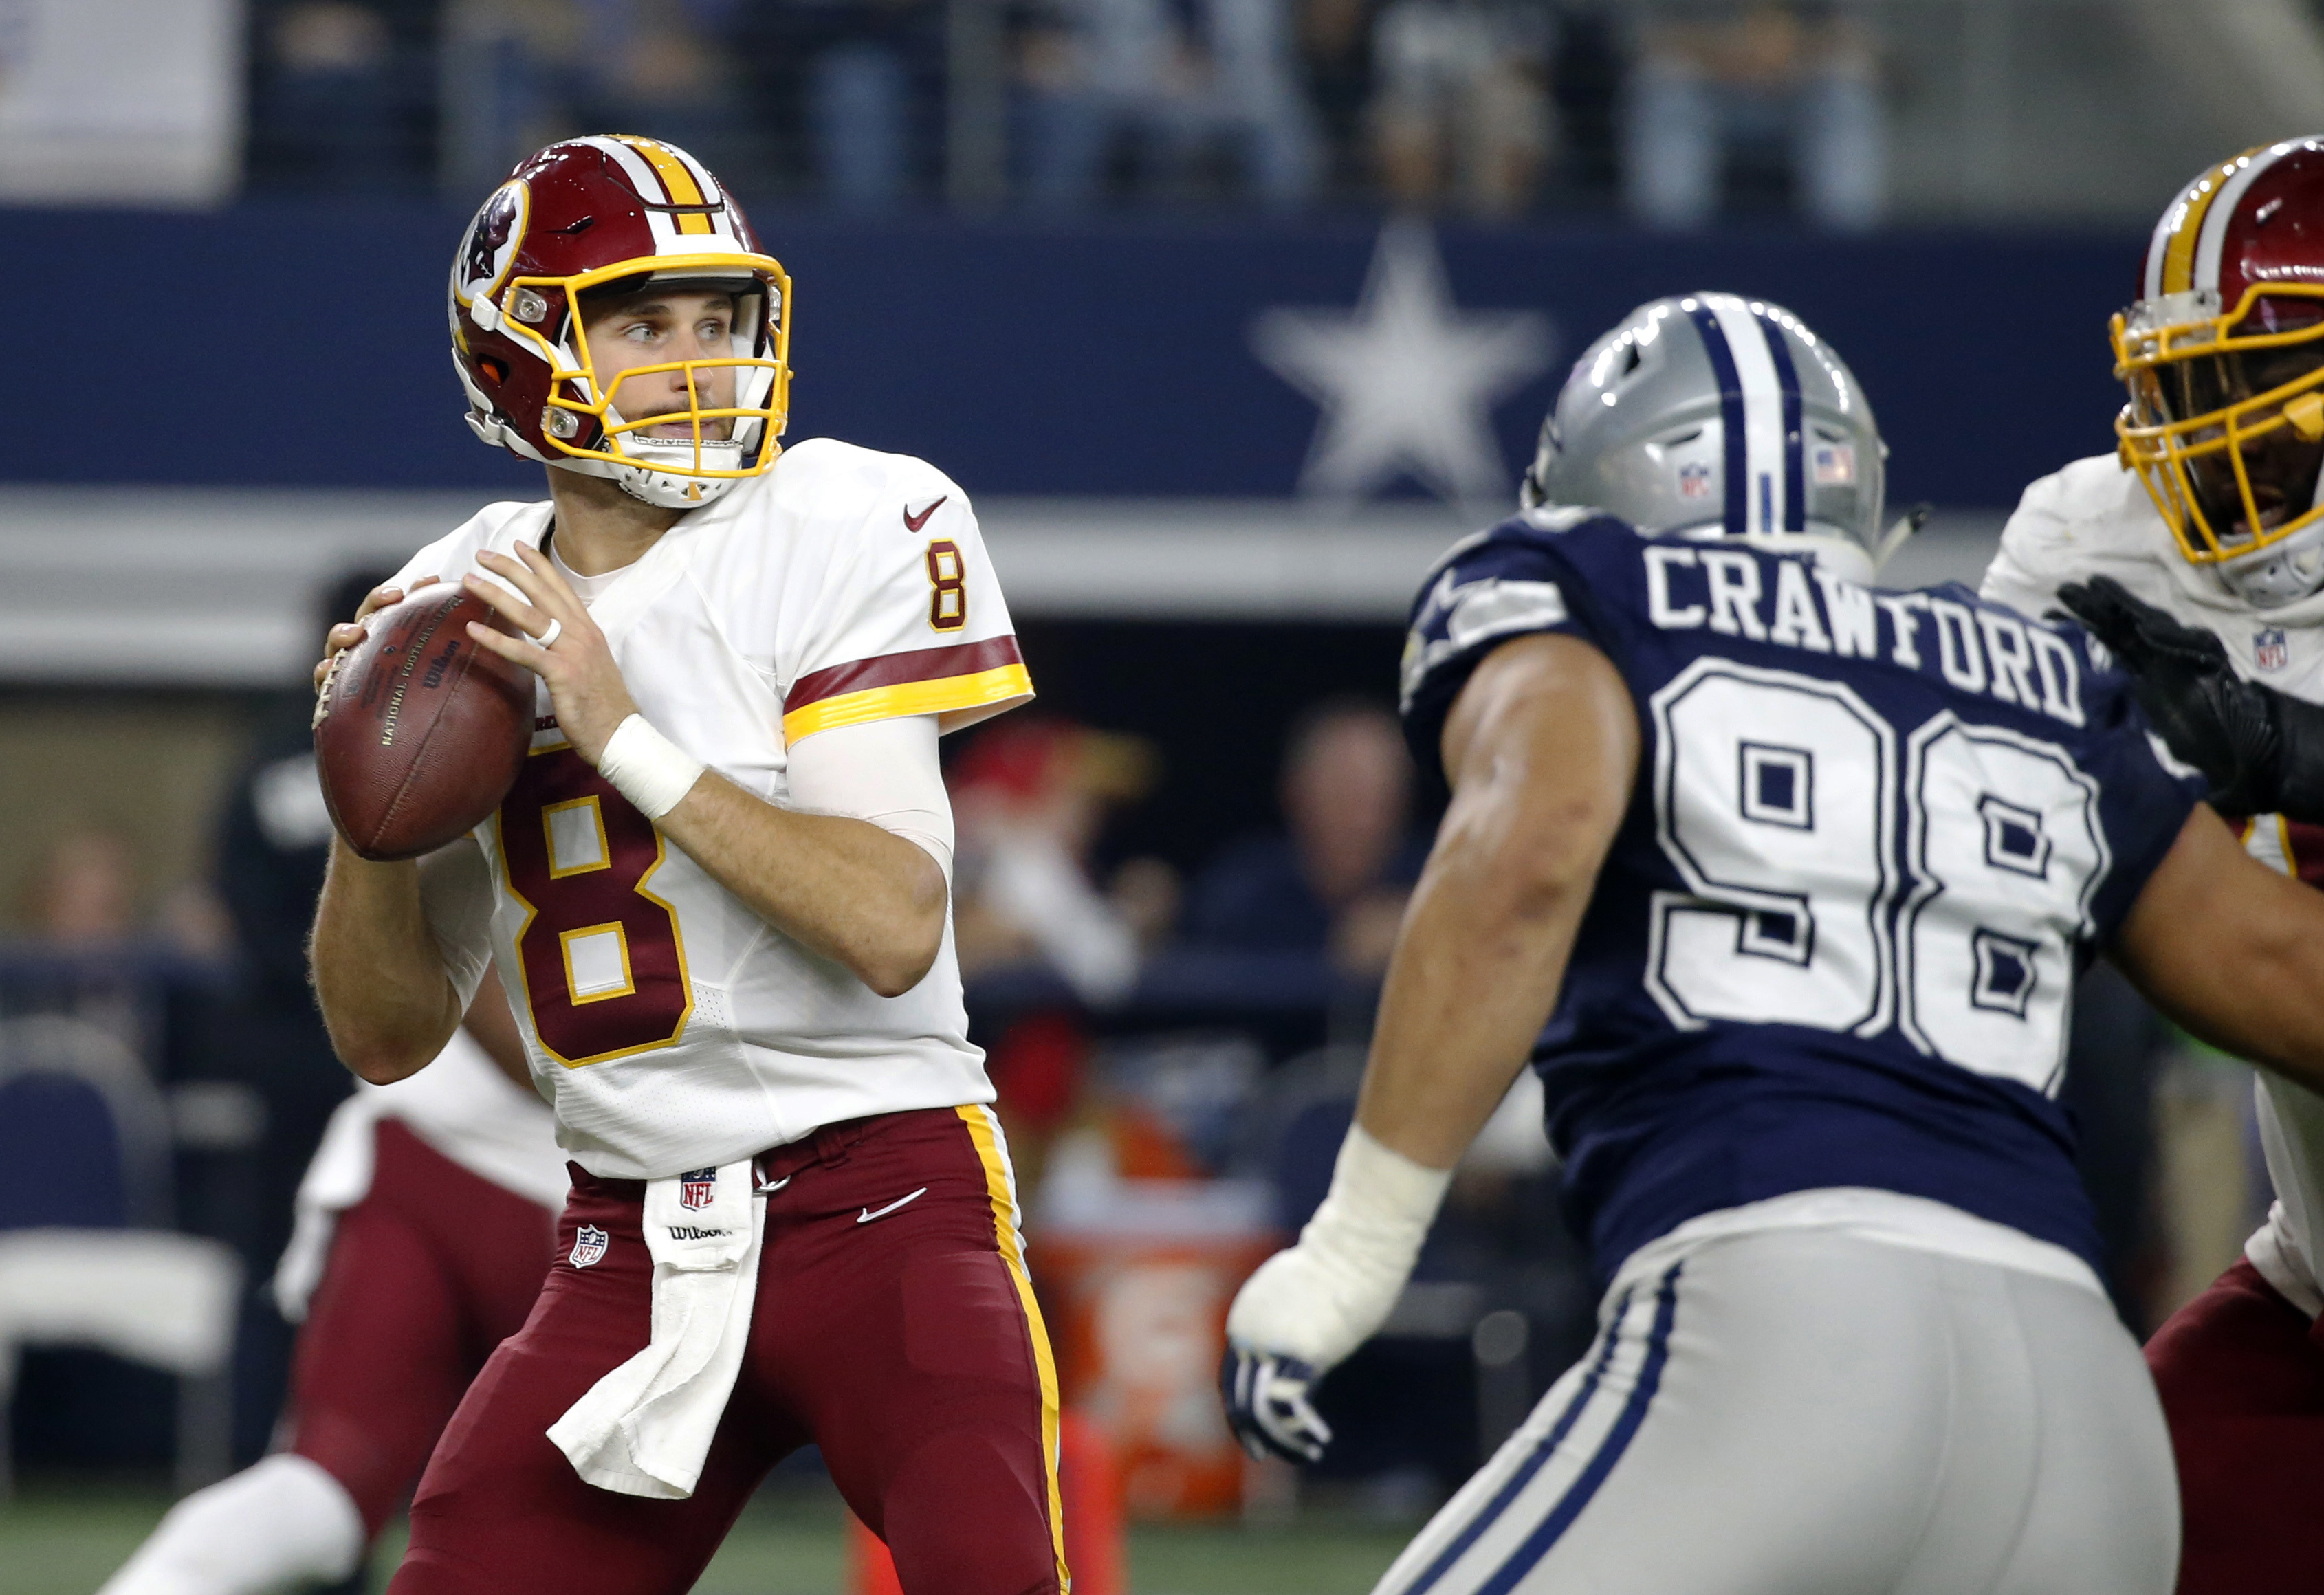 Washington Redskins quarterback Kirk Cousins (8) prepares to throw a pass under pressure from Dallas Cowboys' Tyrone Crawford (98) during the first half of an NFL football game, Thursday, Nov. 24, 2016, in Arlington, Texas. (AP Photo/Michael Ainsworth)